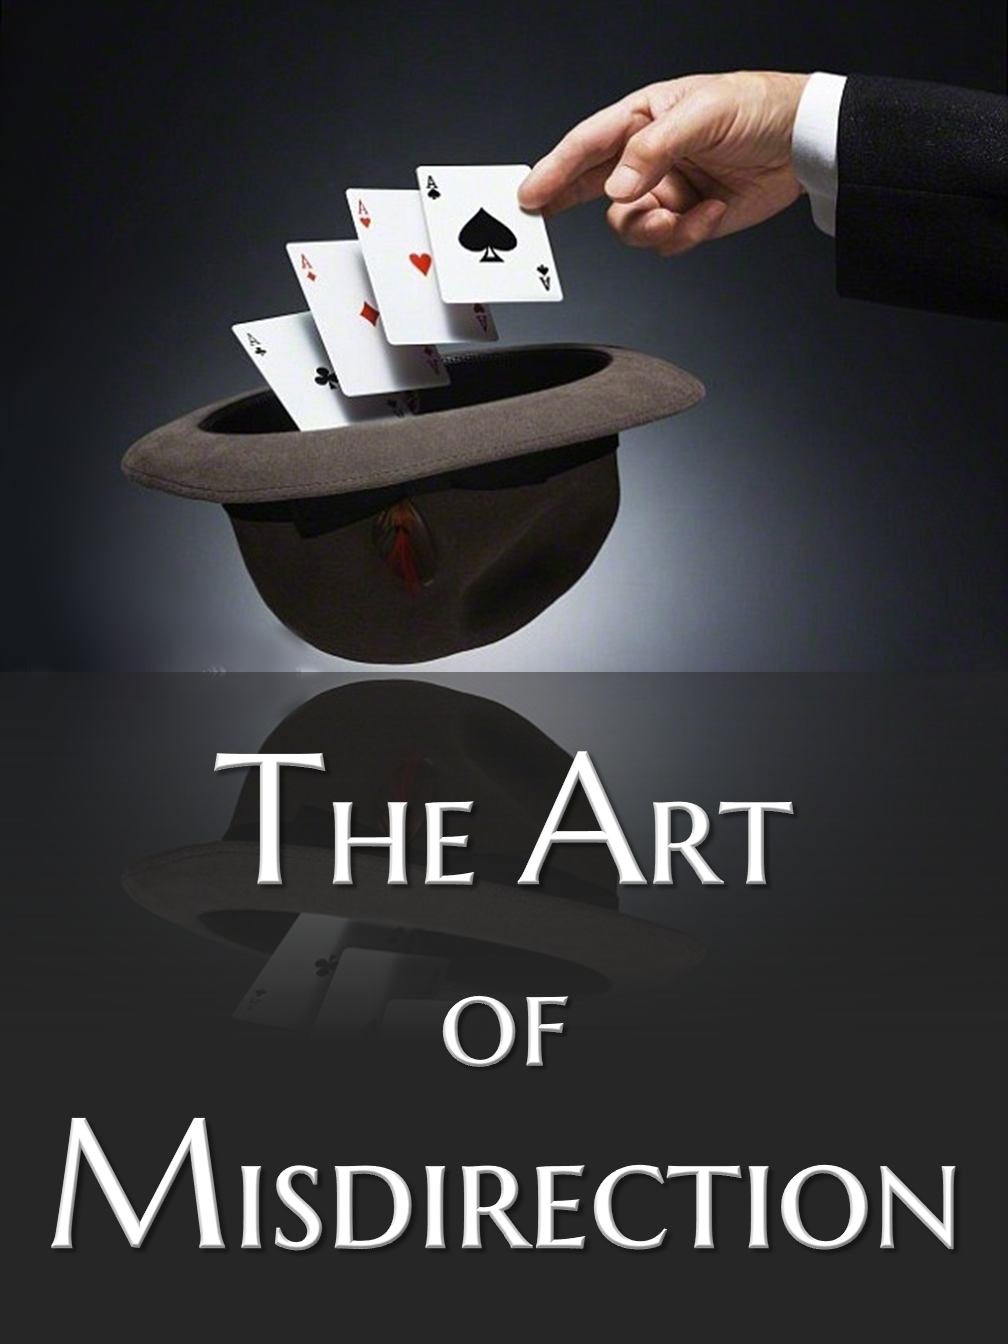 The Art of Misdirection!